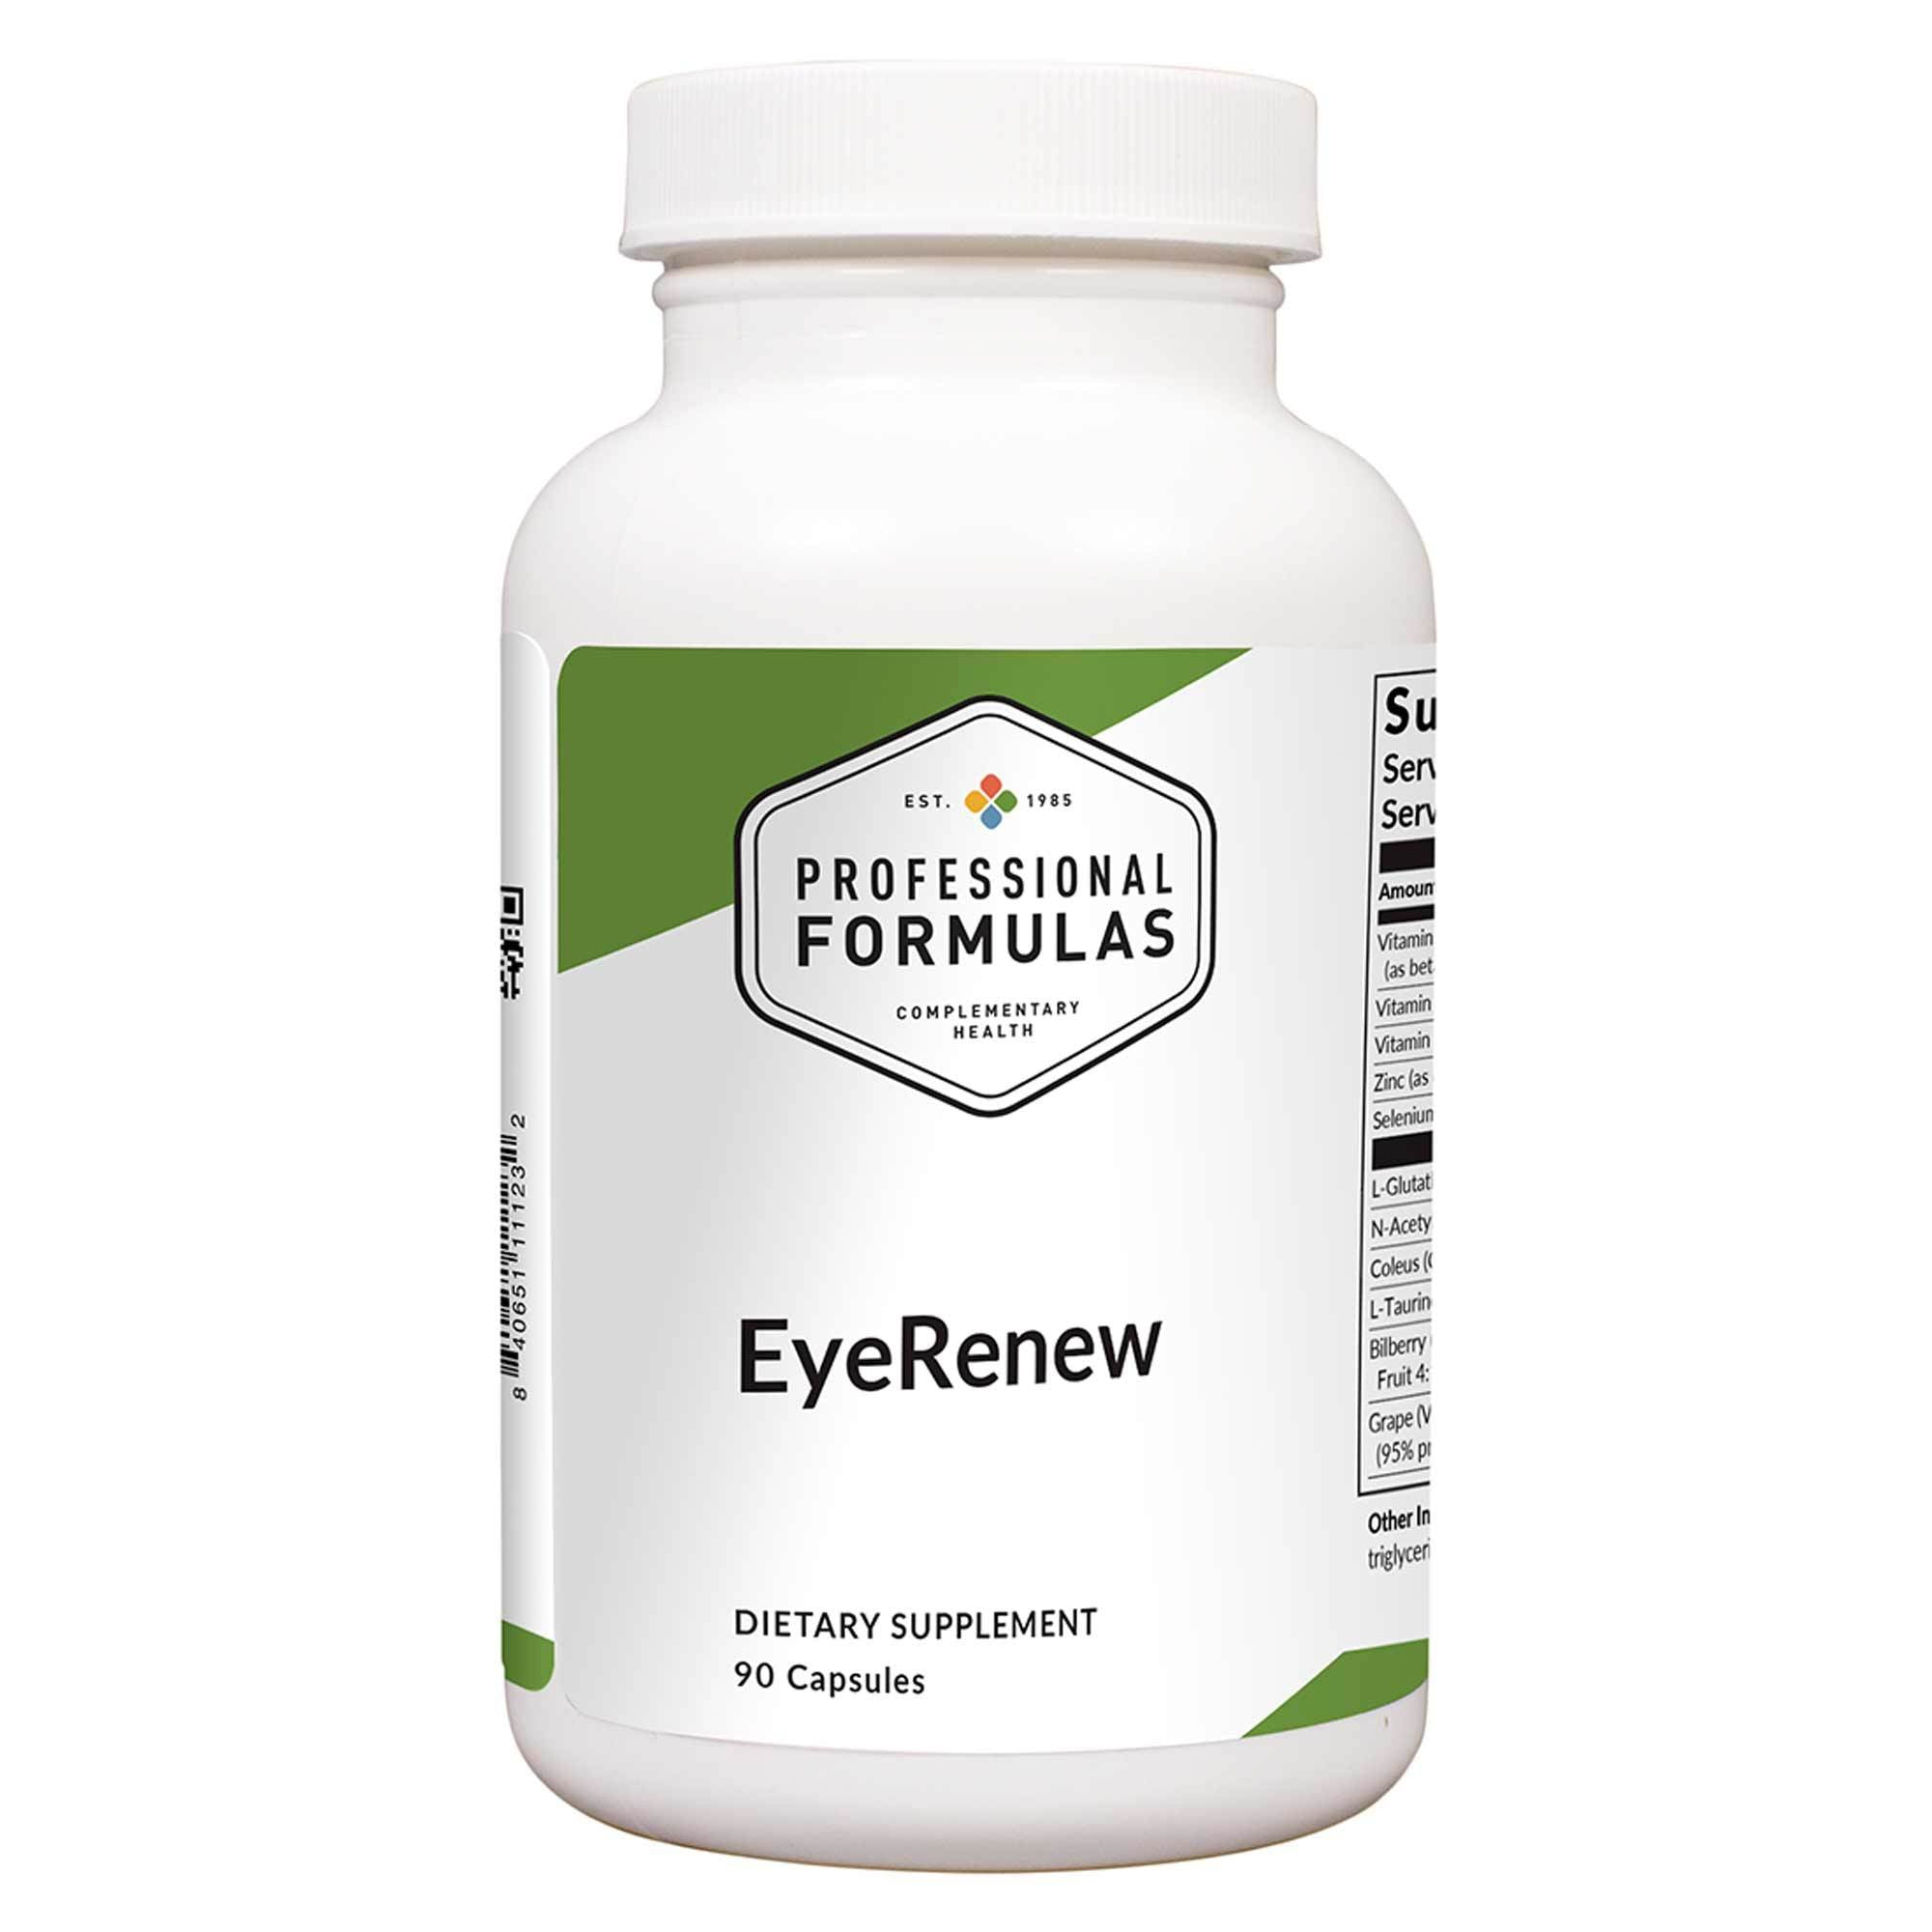 Eye Renew 90c Professional Formulas